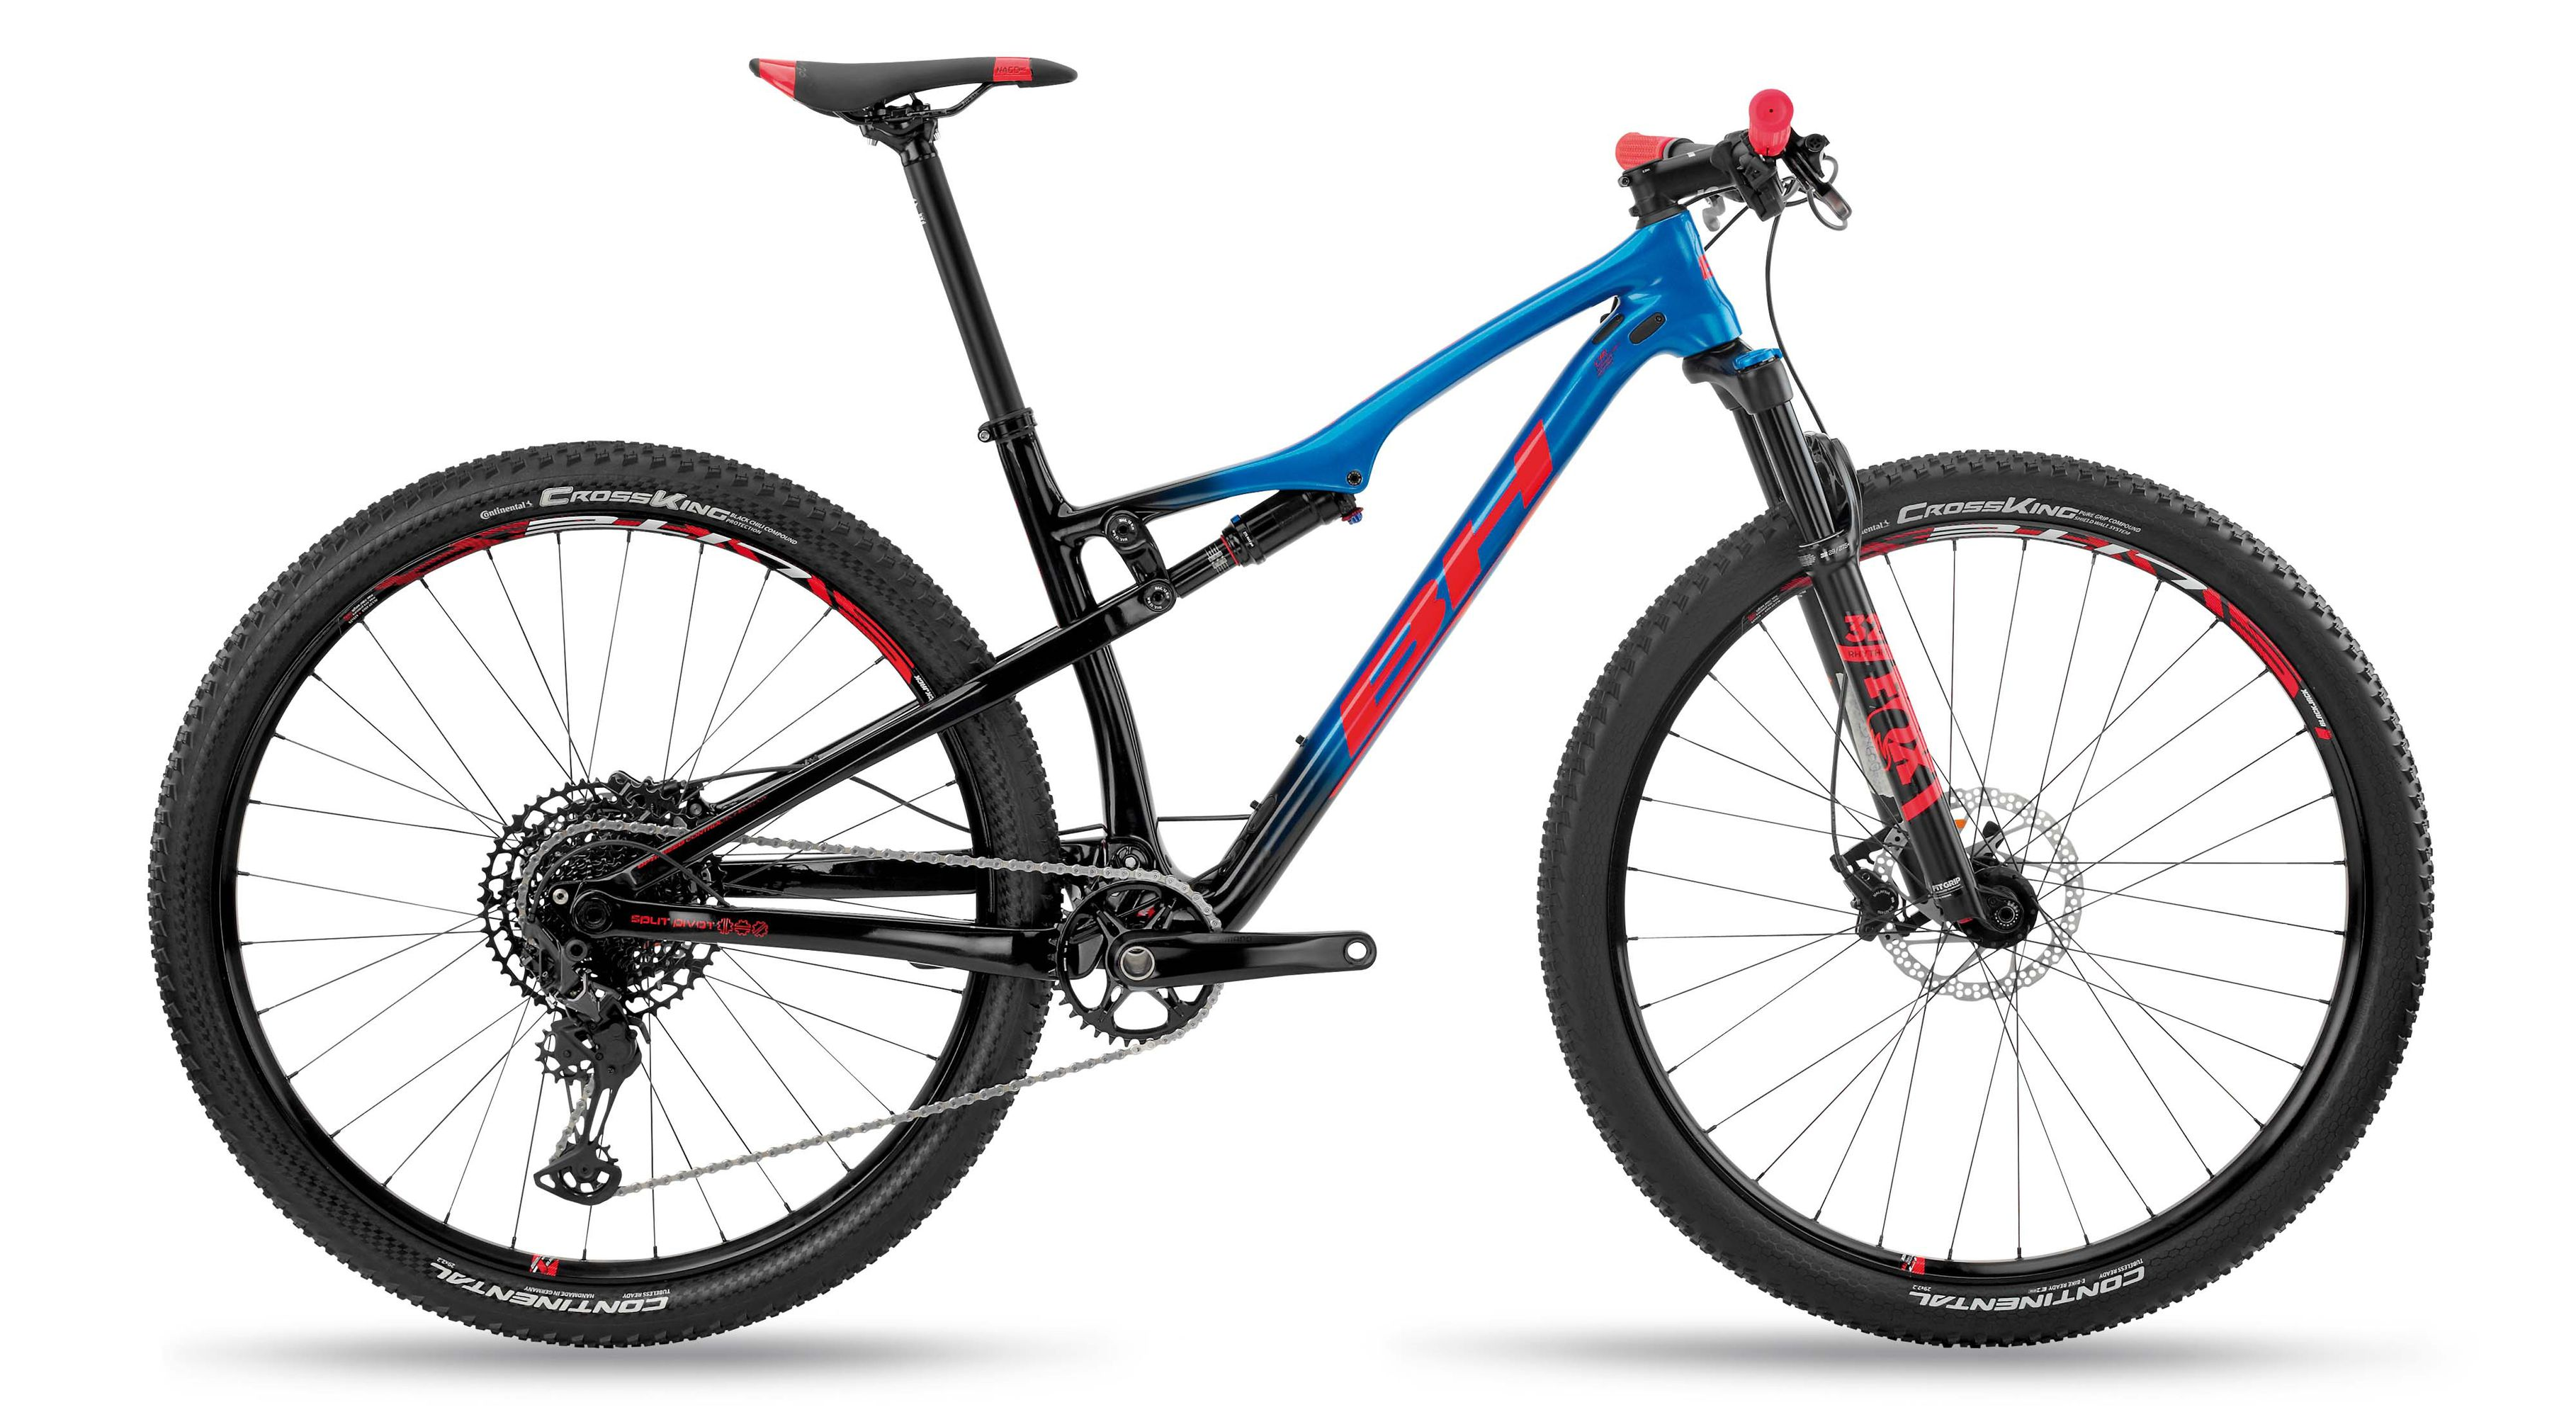 LYNX RACE RC CARBON 6.0 - BH Bikes